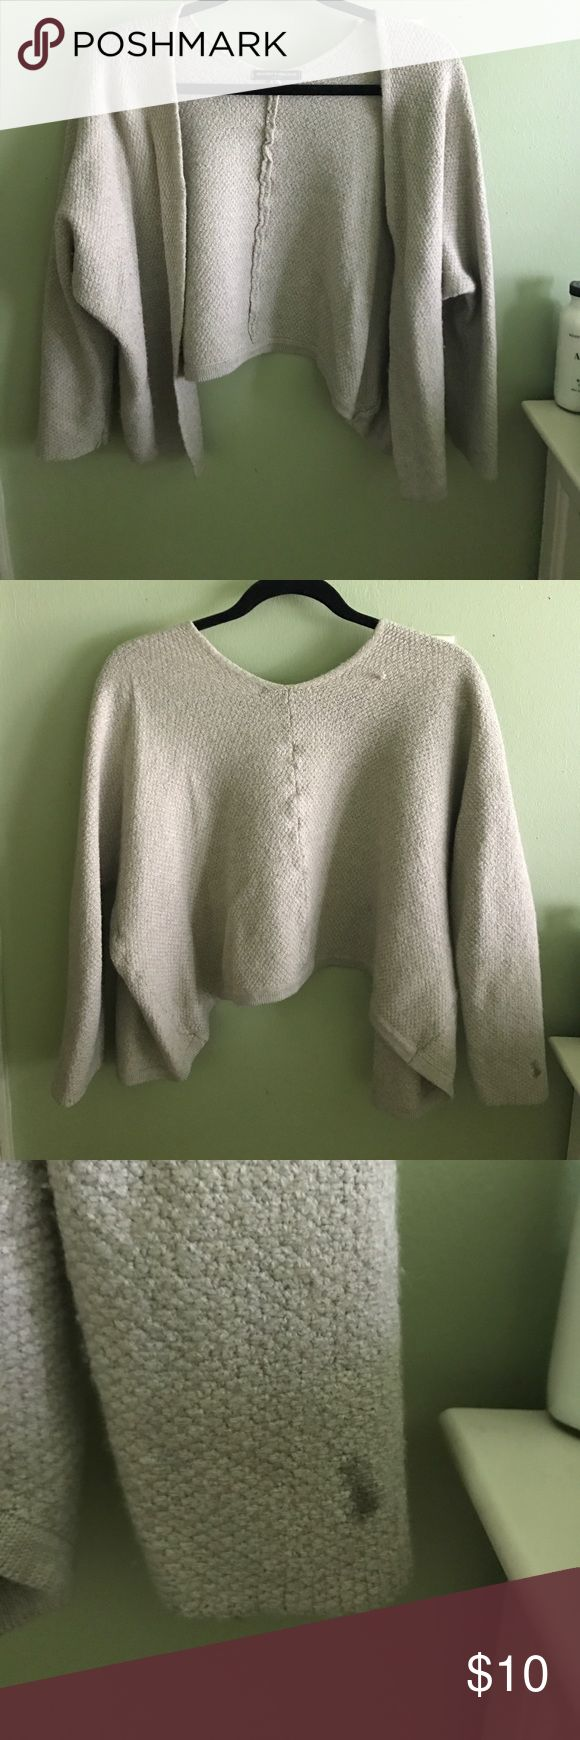 Brandy Melville Knit Cropped Sweater There is one stain and one spot of pulling but otherwise in PERFECT CONDITION! Brandy Melville Sweaters Cardigans